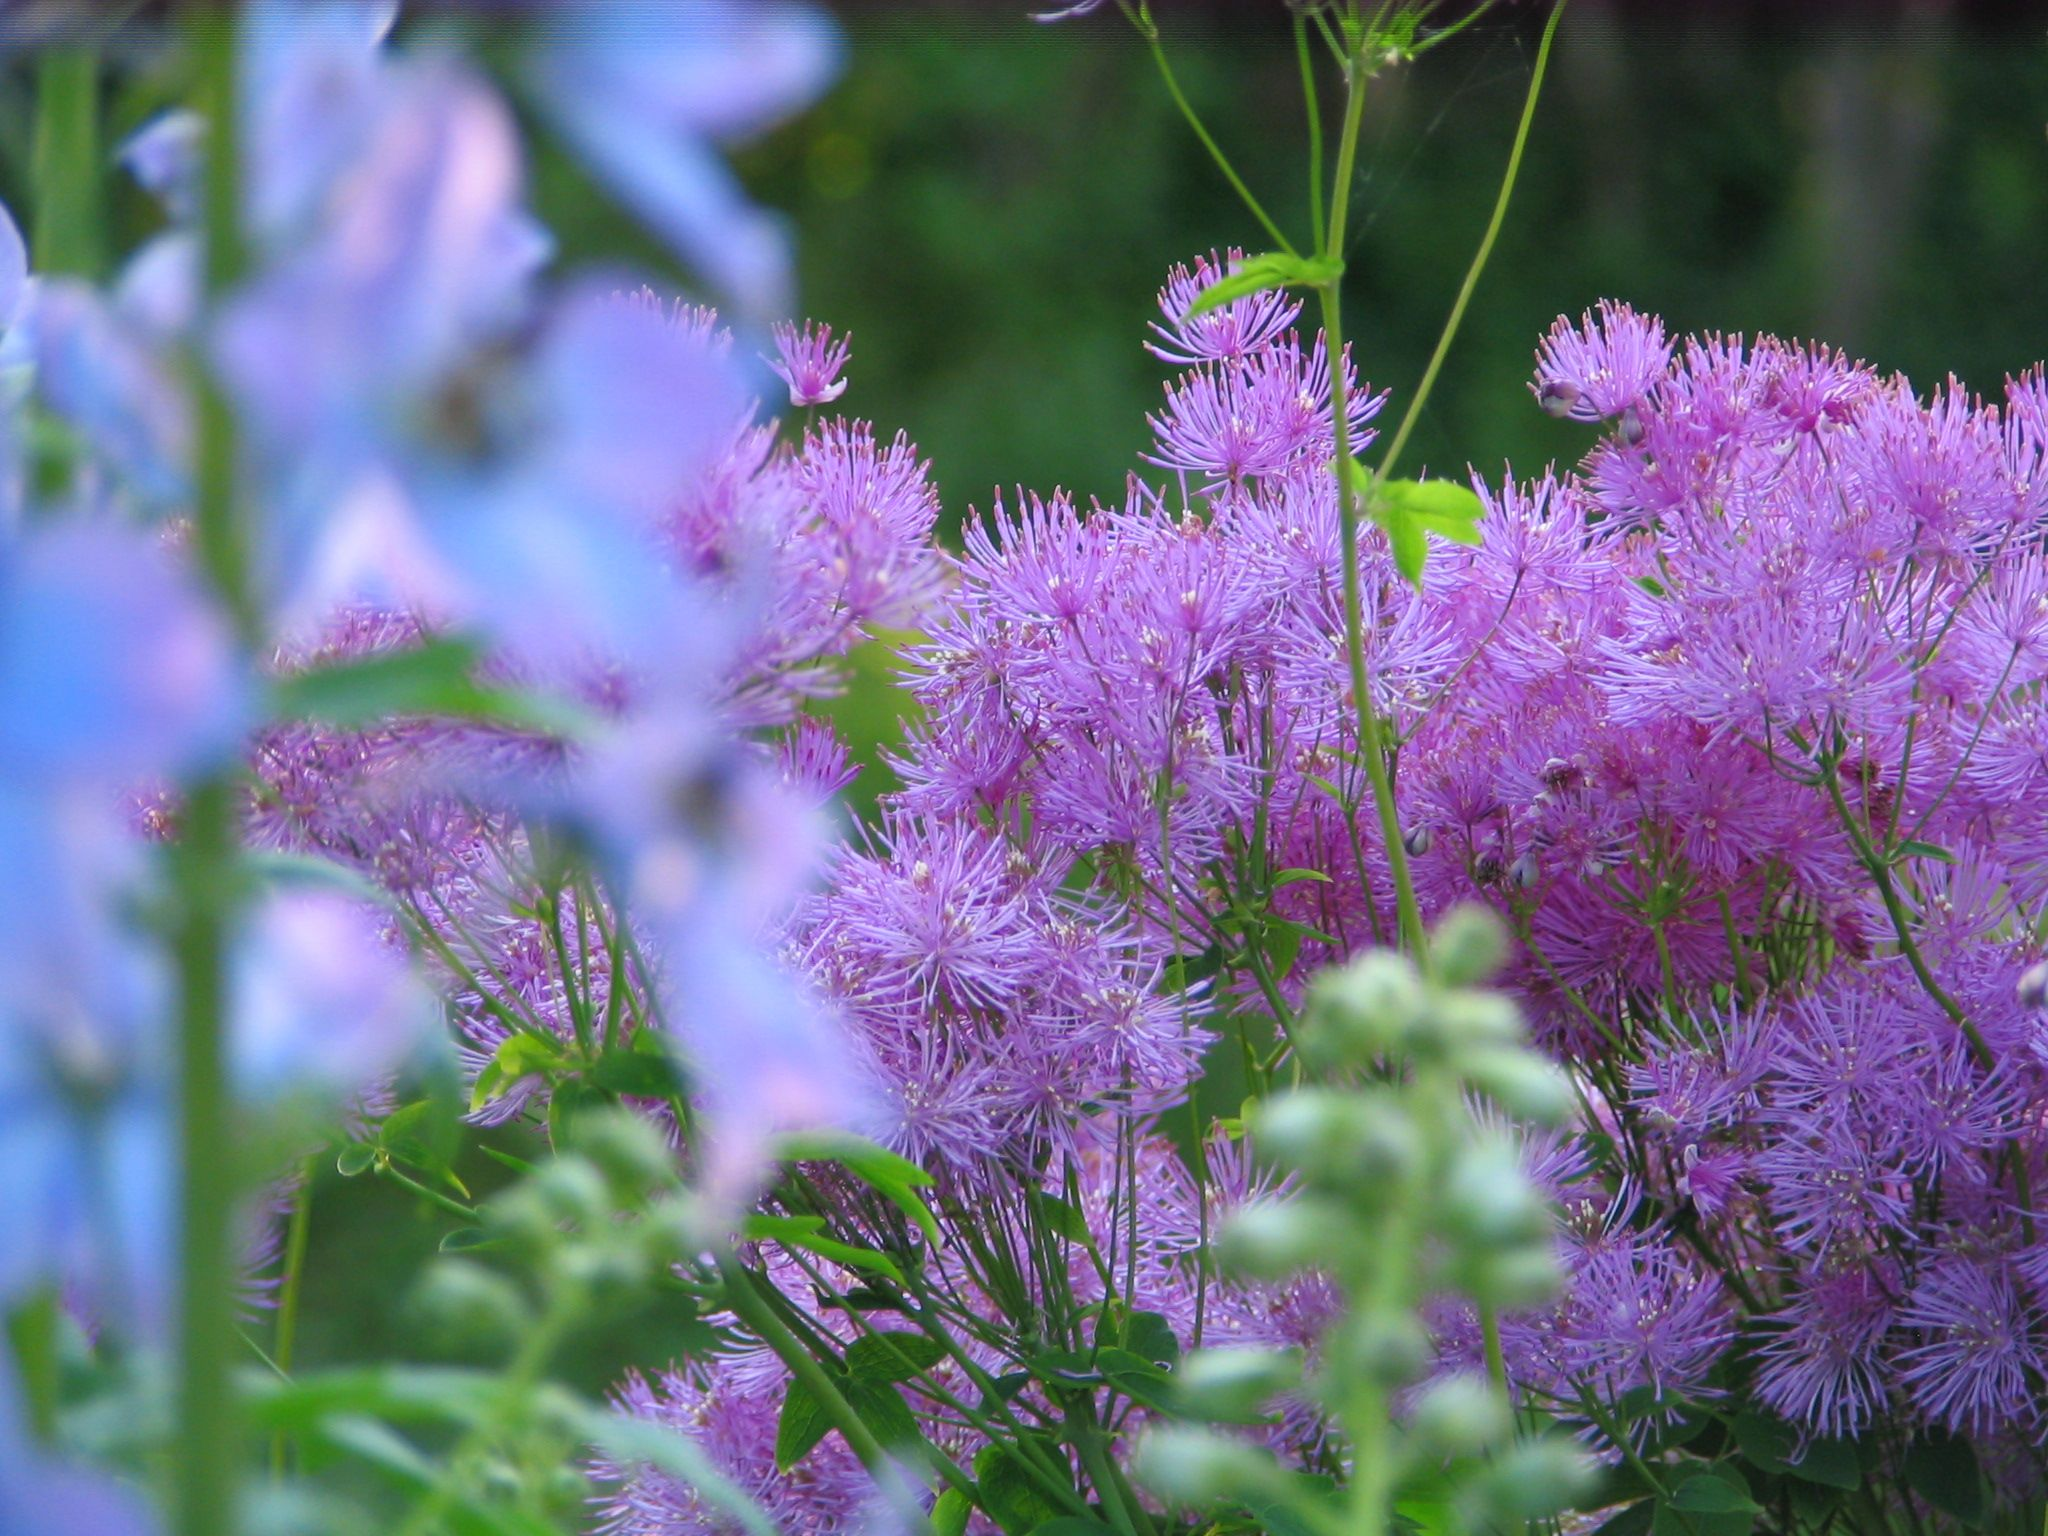 Thalictrum meadow rue a lovely summer flowering perennial summer thalictrum meadow rue a lovely summer flowering perennial mightylinksfo